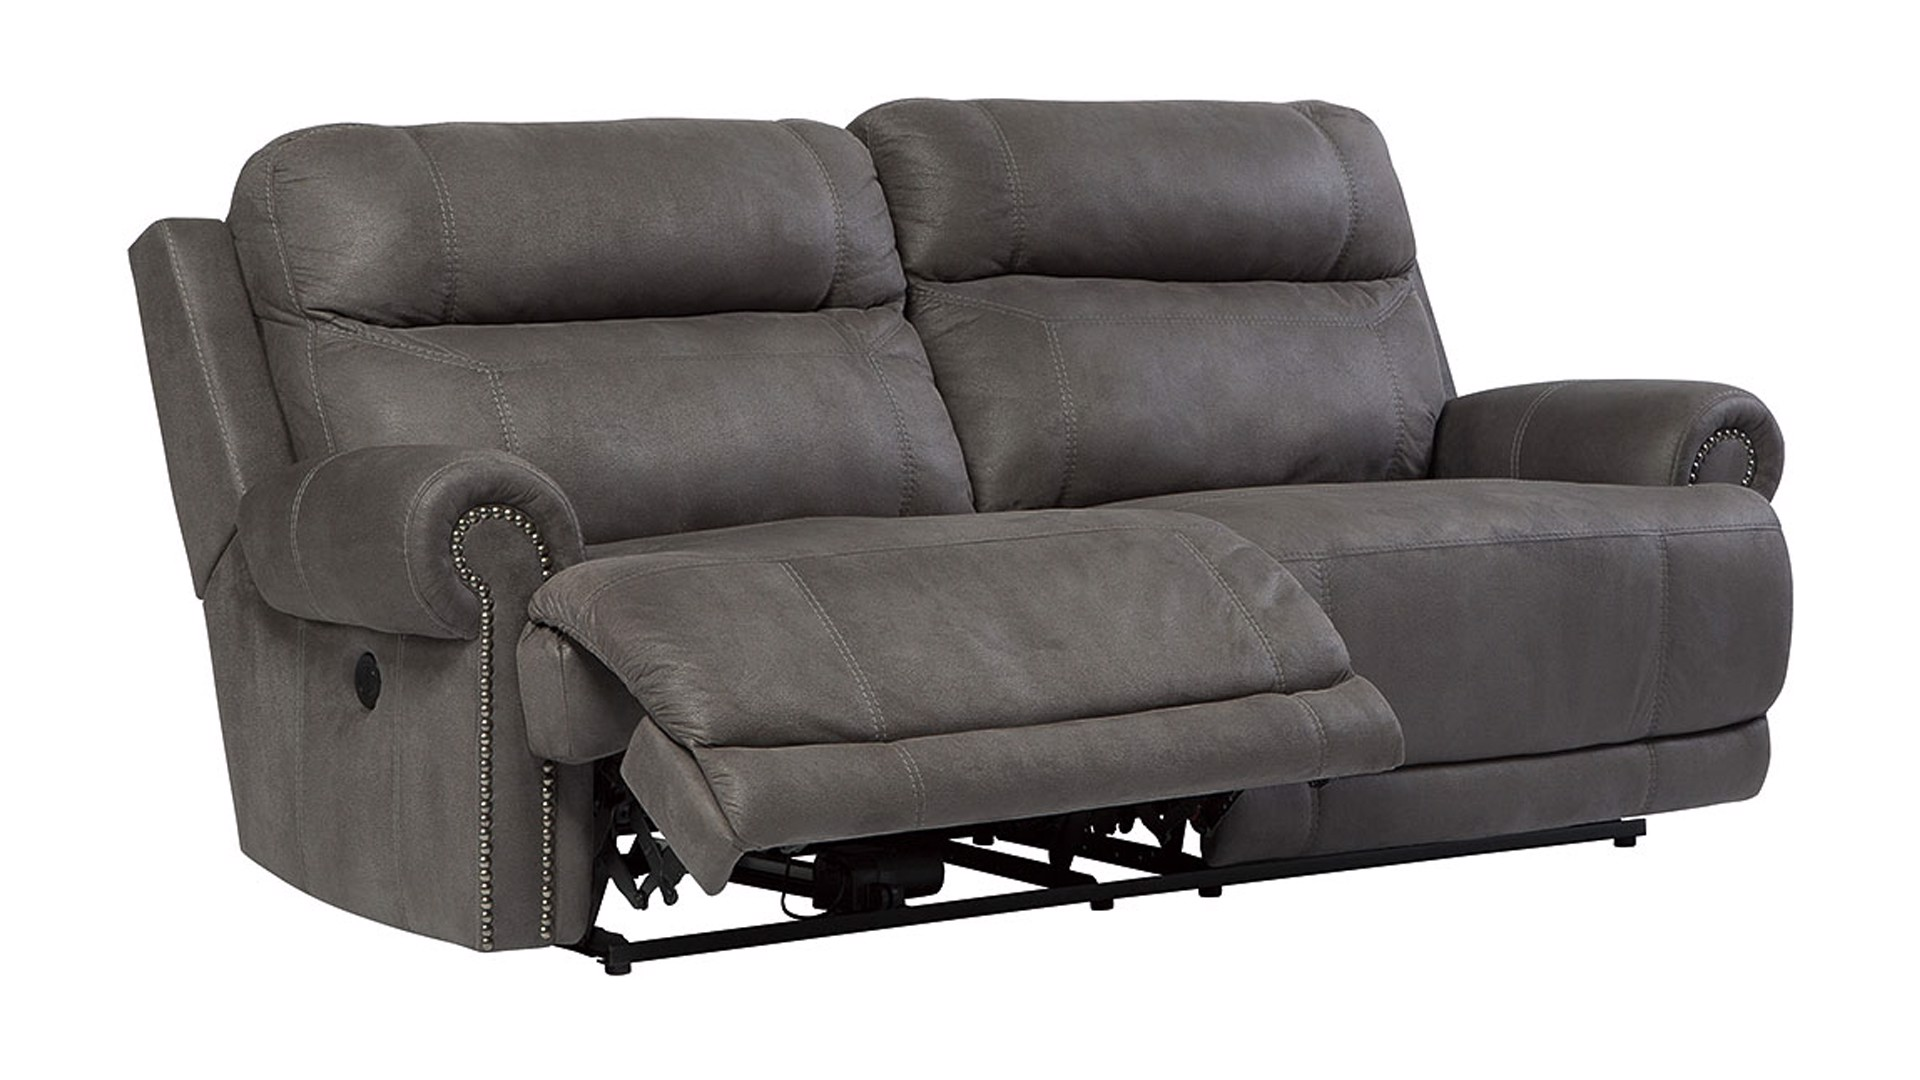 Sofa băng bed S438